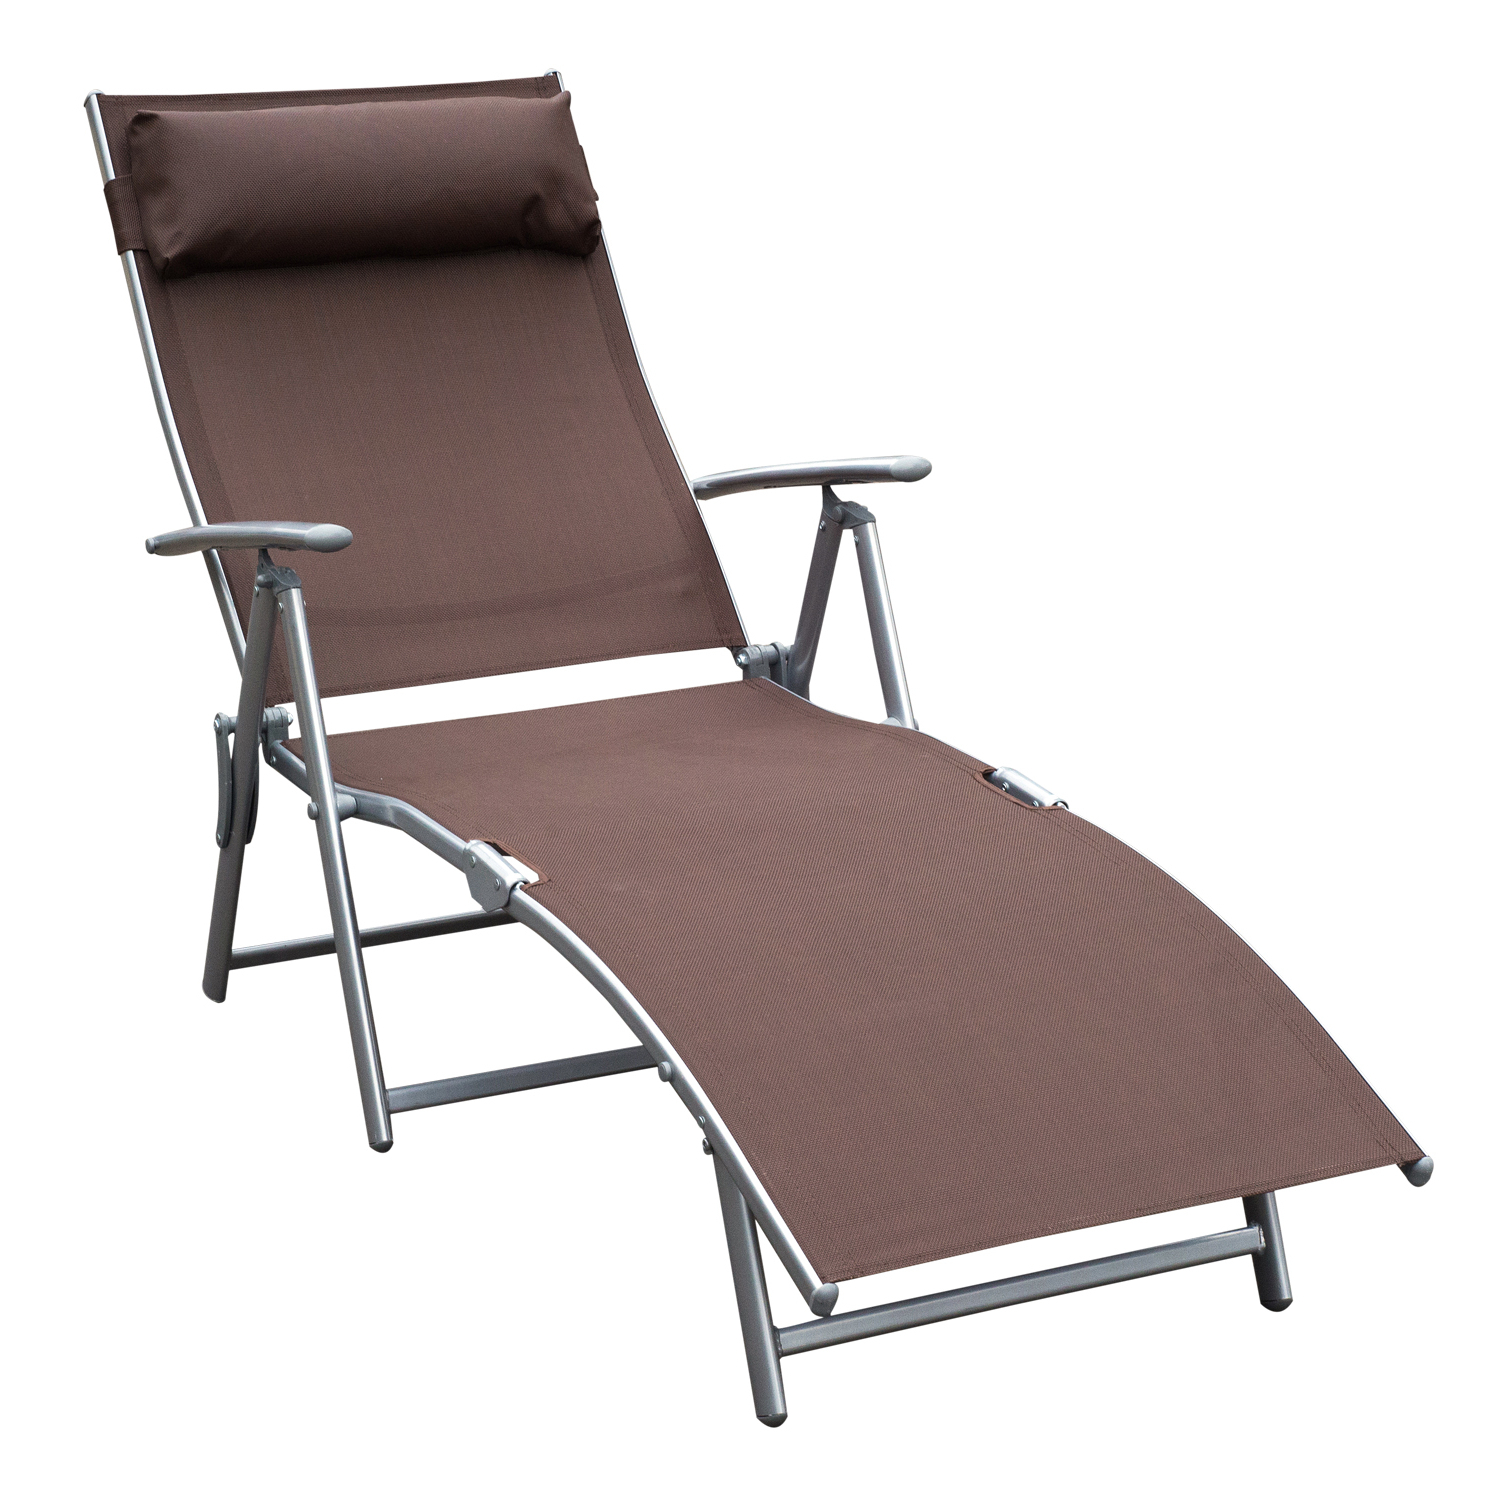 Trendy Outsunny Sling Fabric Folding Patio Reclining Outdoor Deck Chaise Lounge  Chair With Cushion – Brown Throughout Reclining Sling Chaise Lounges (View 22 of 25)